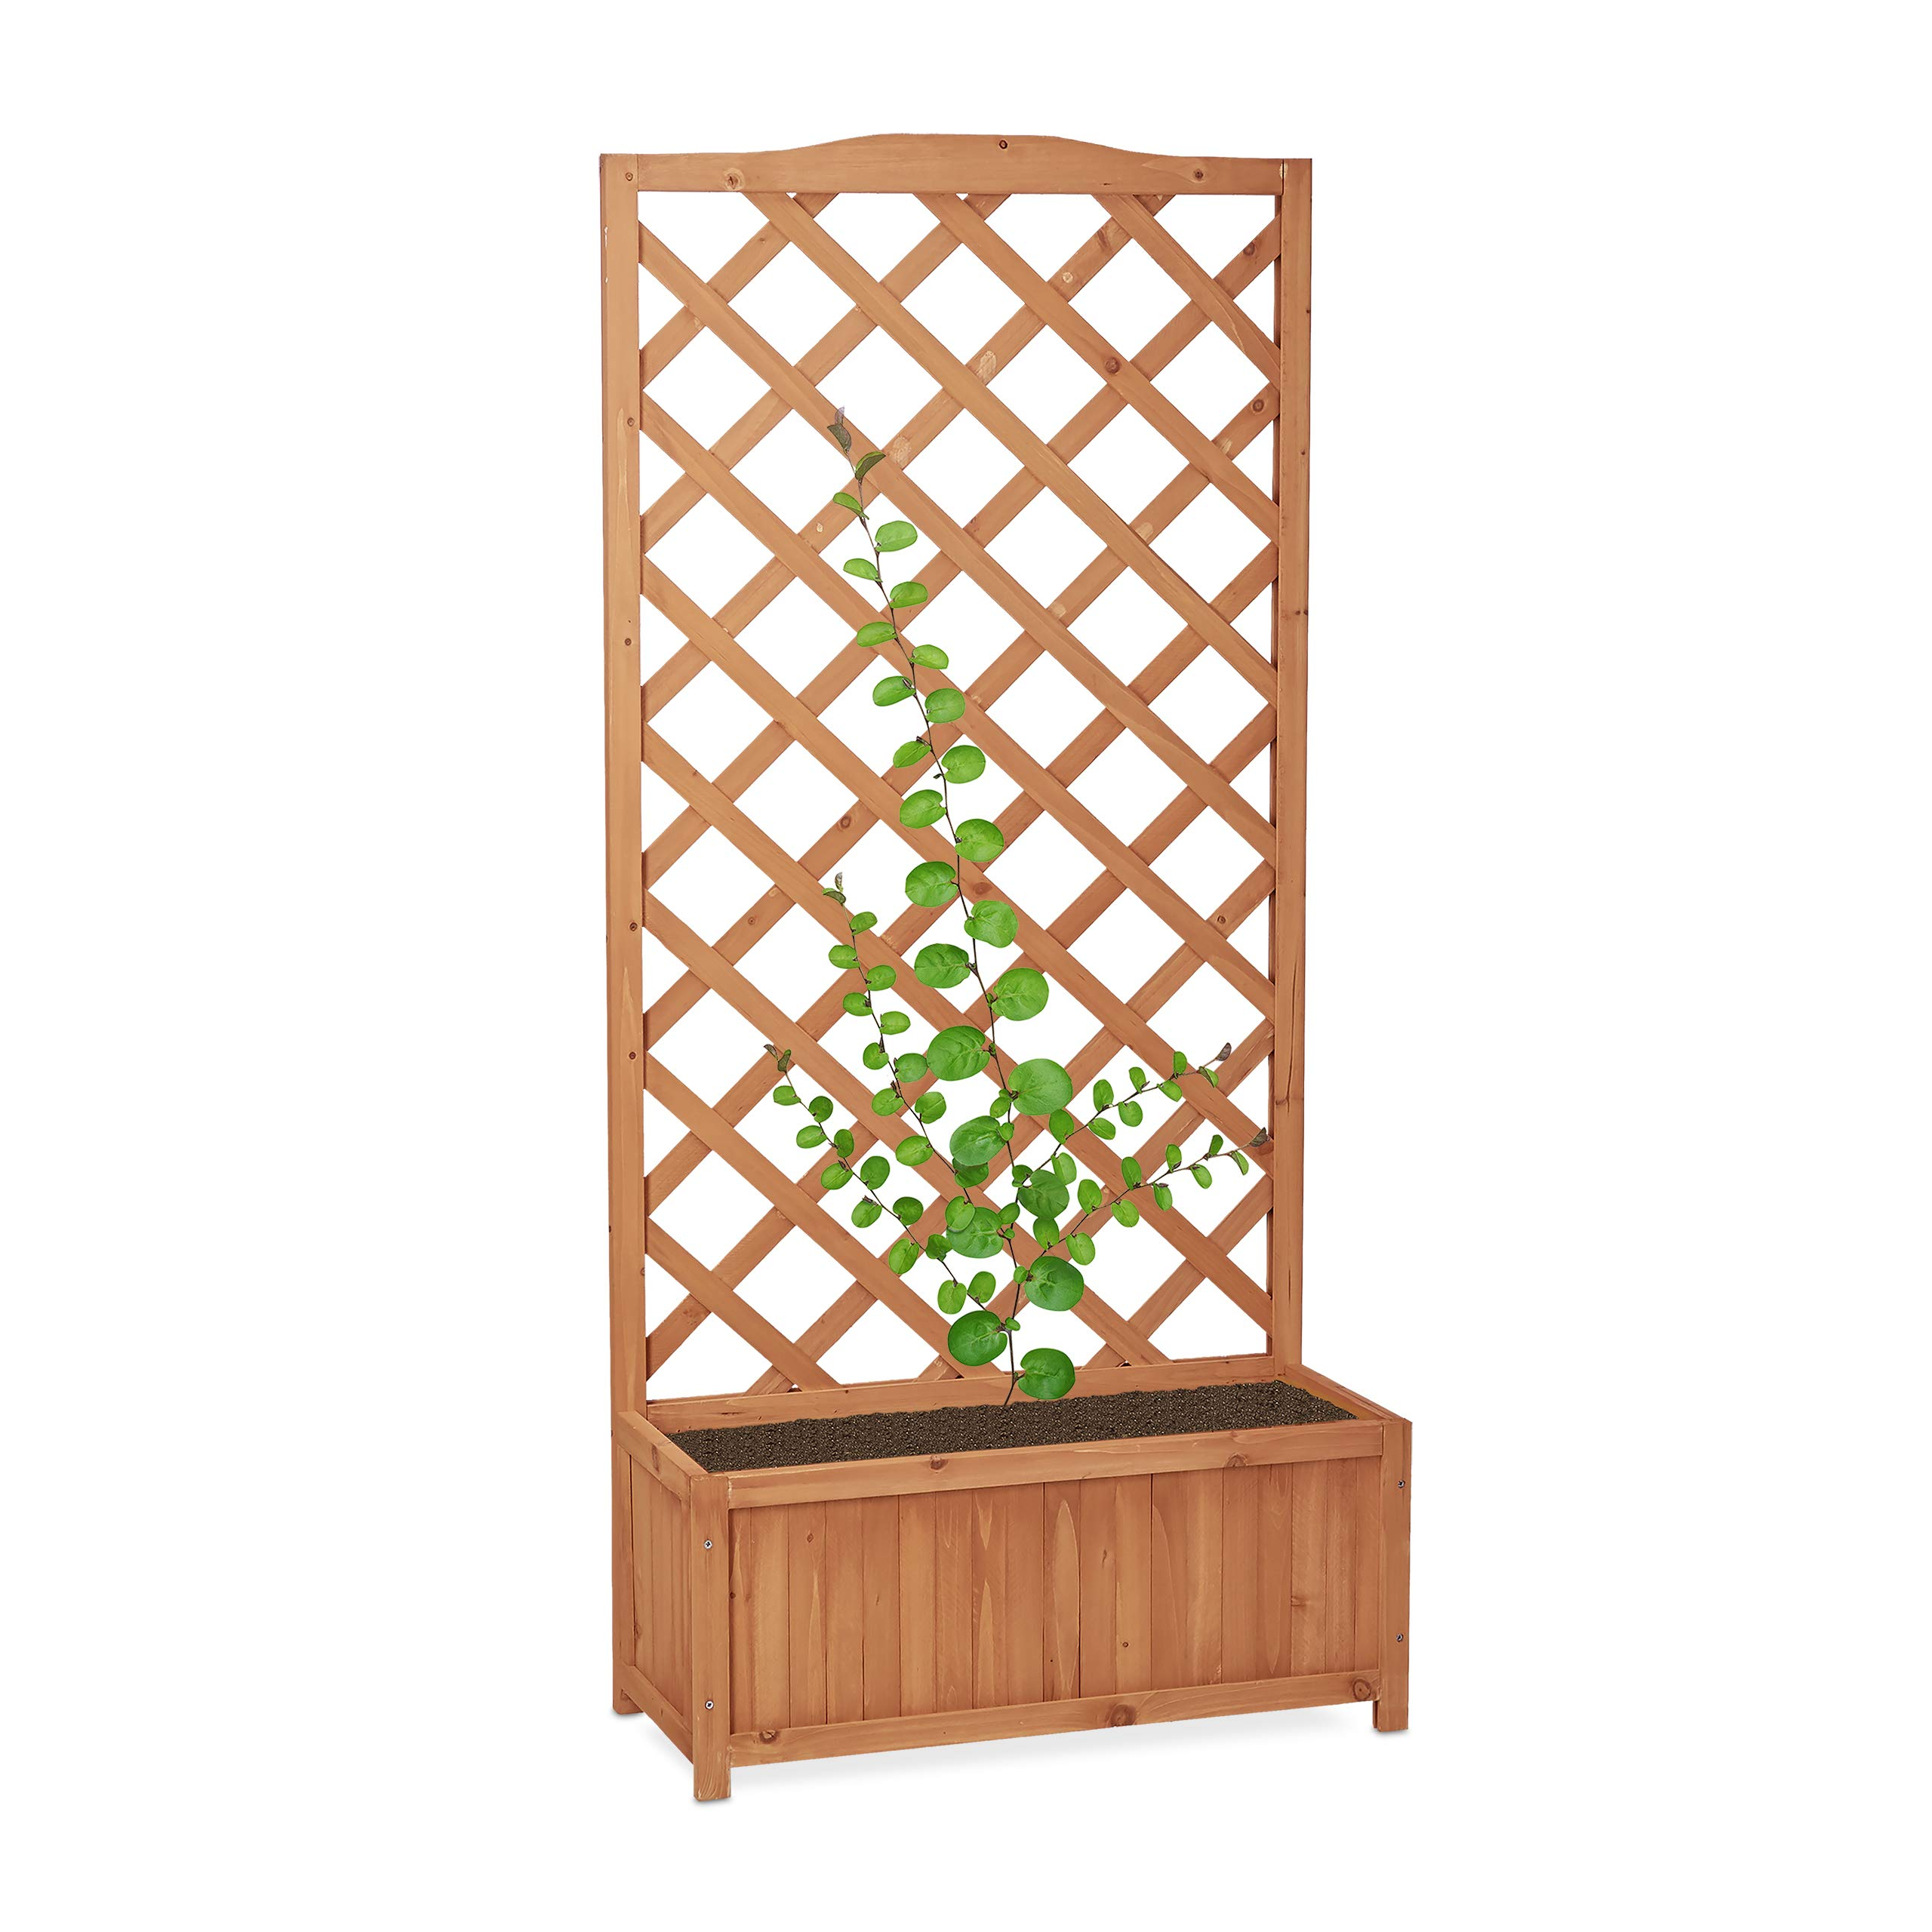 Relaxdays Wooden Planter Box with Trellis